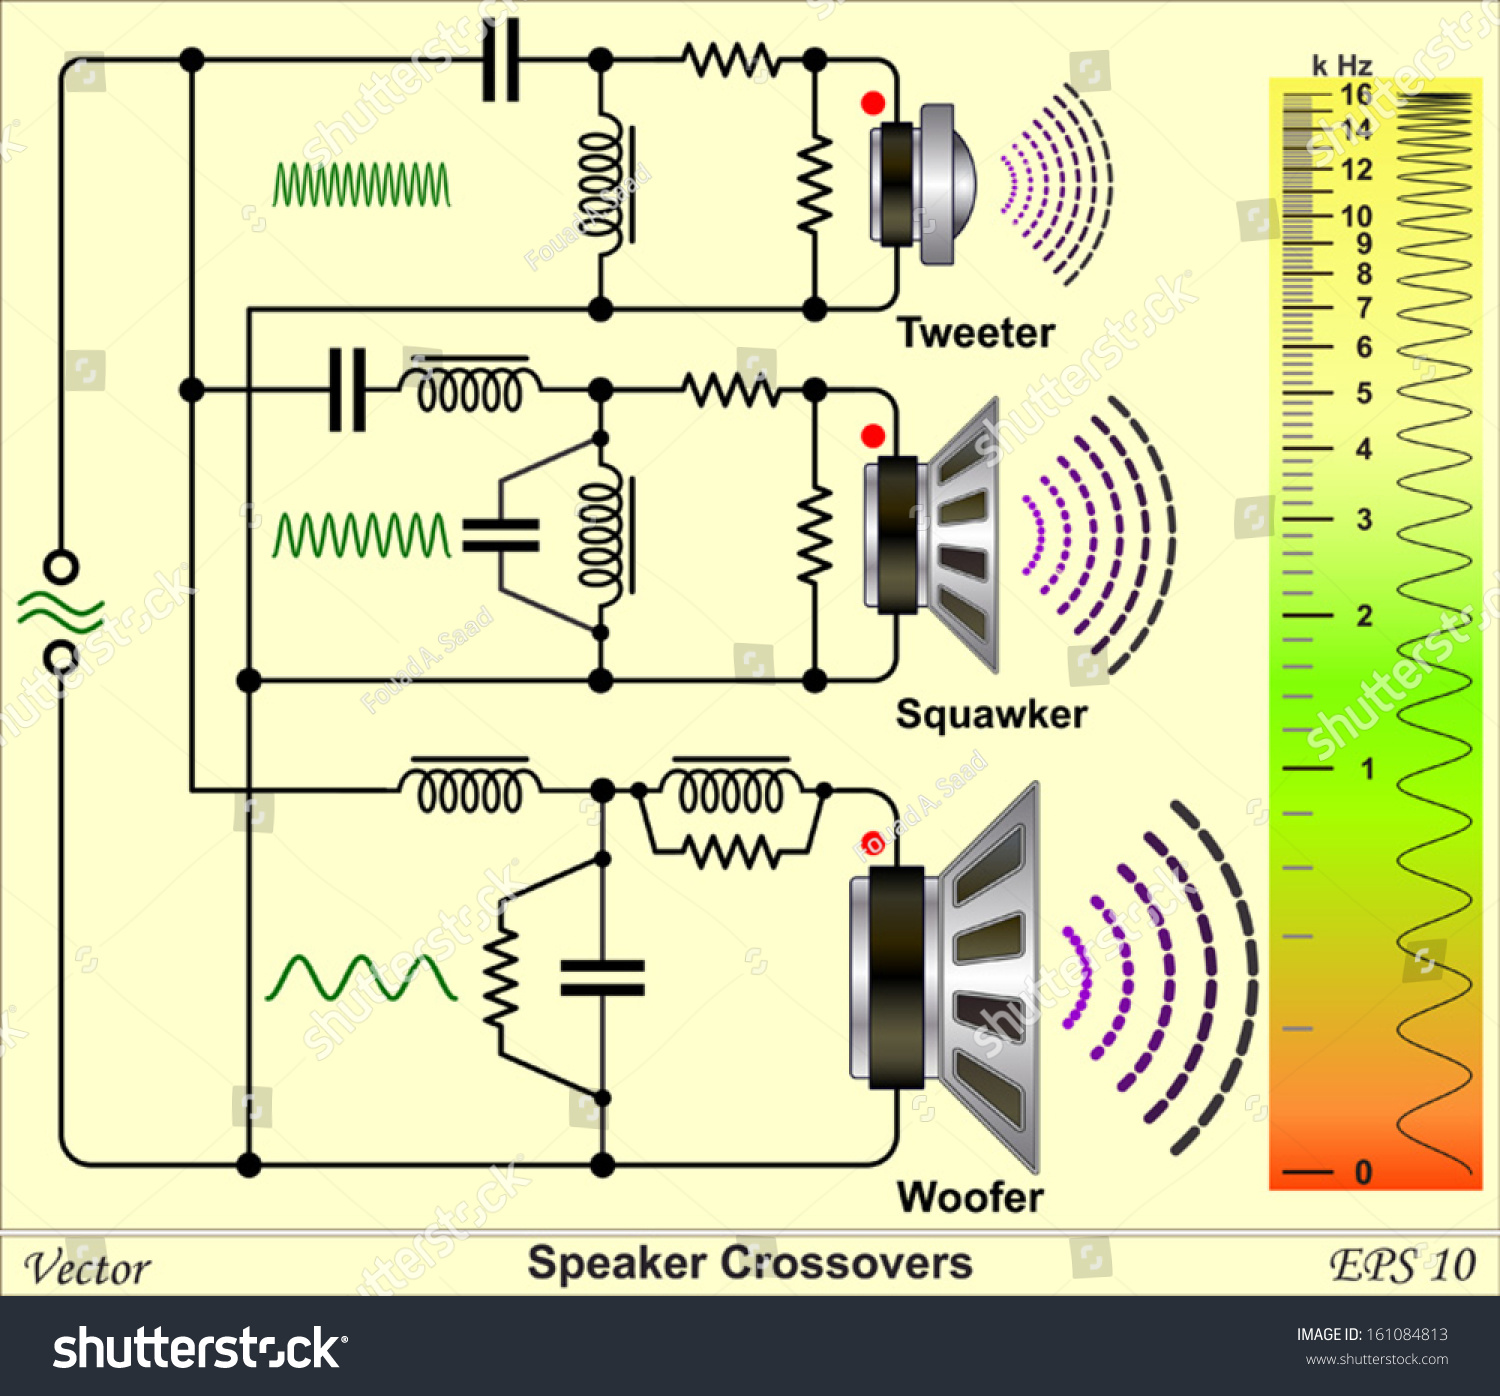 hight resolution of speaker crossovers circuit diagram